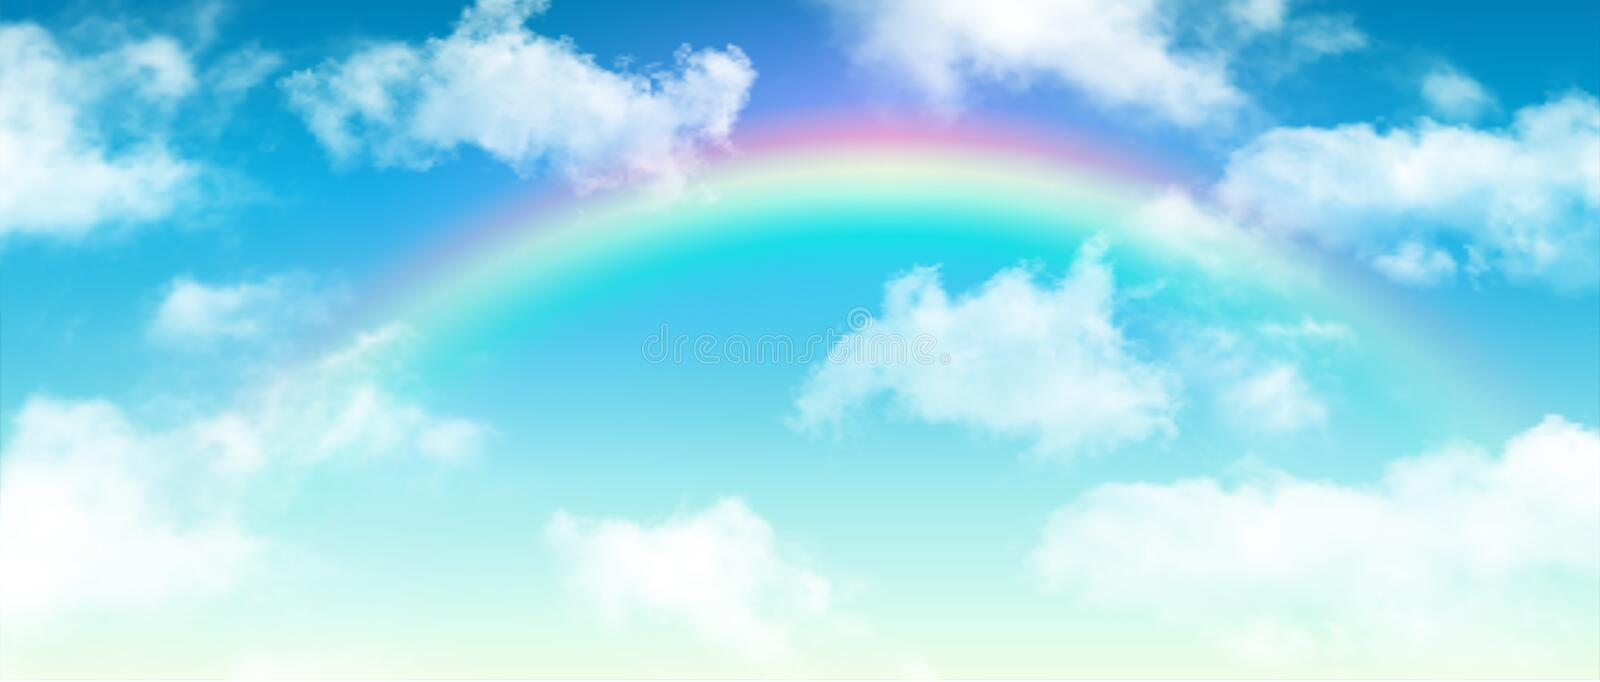 Clouds background blue sky with rainbow royalty free illustration